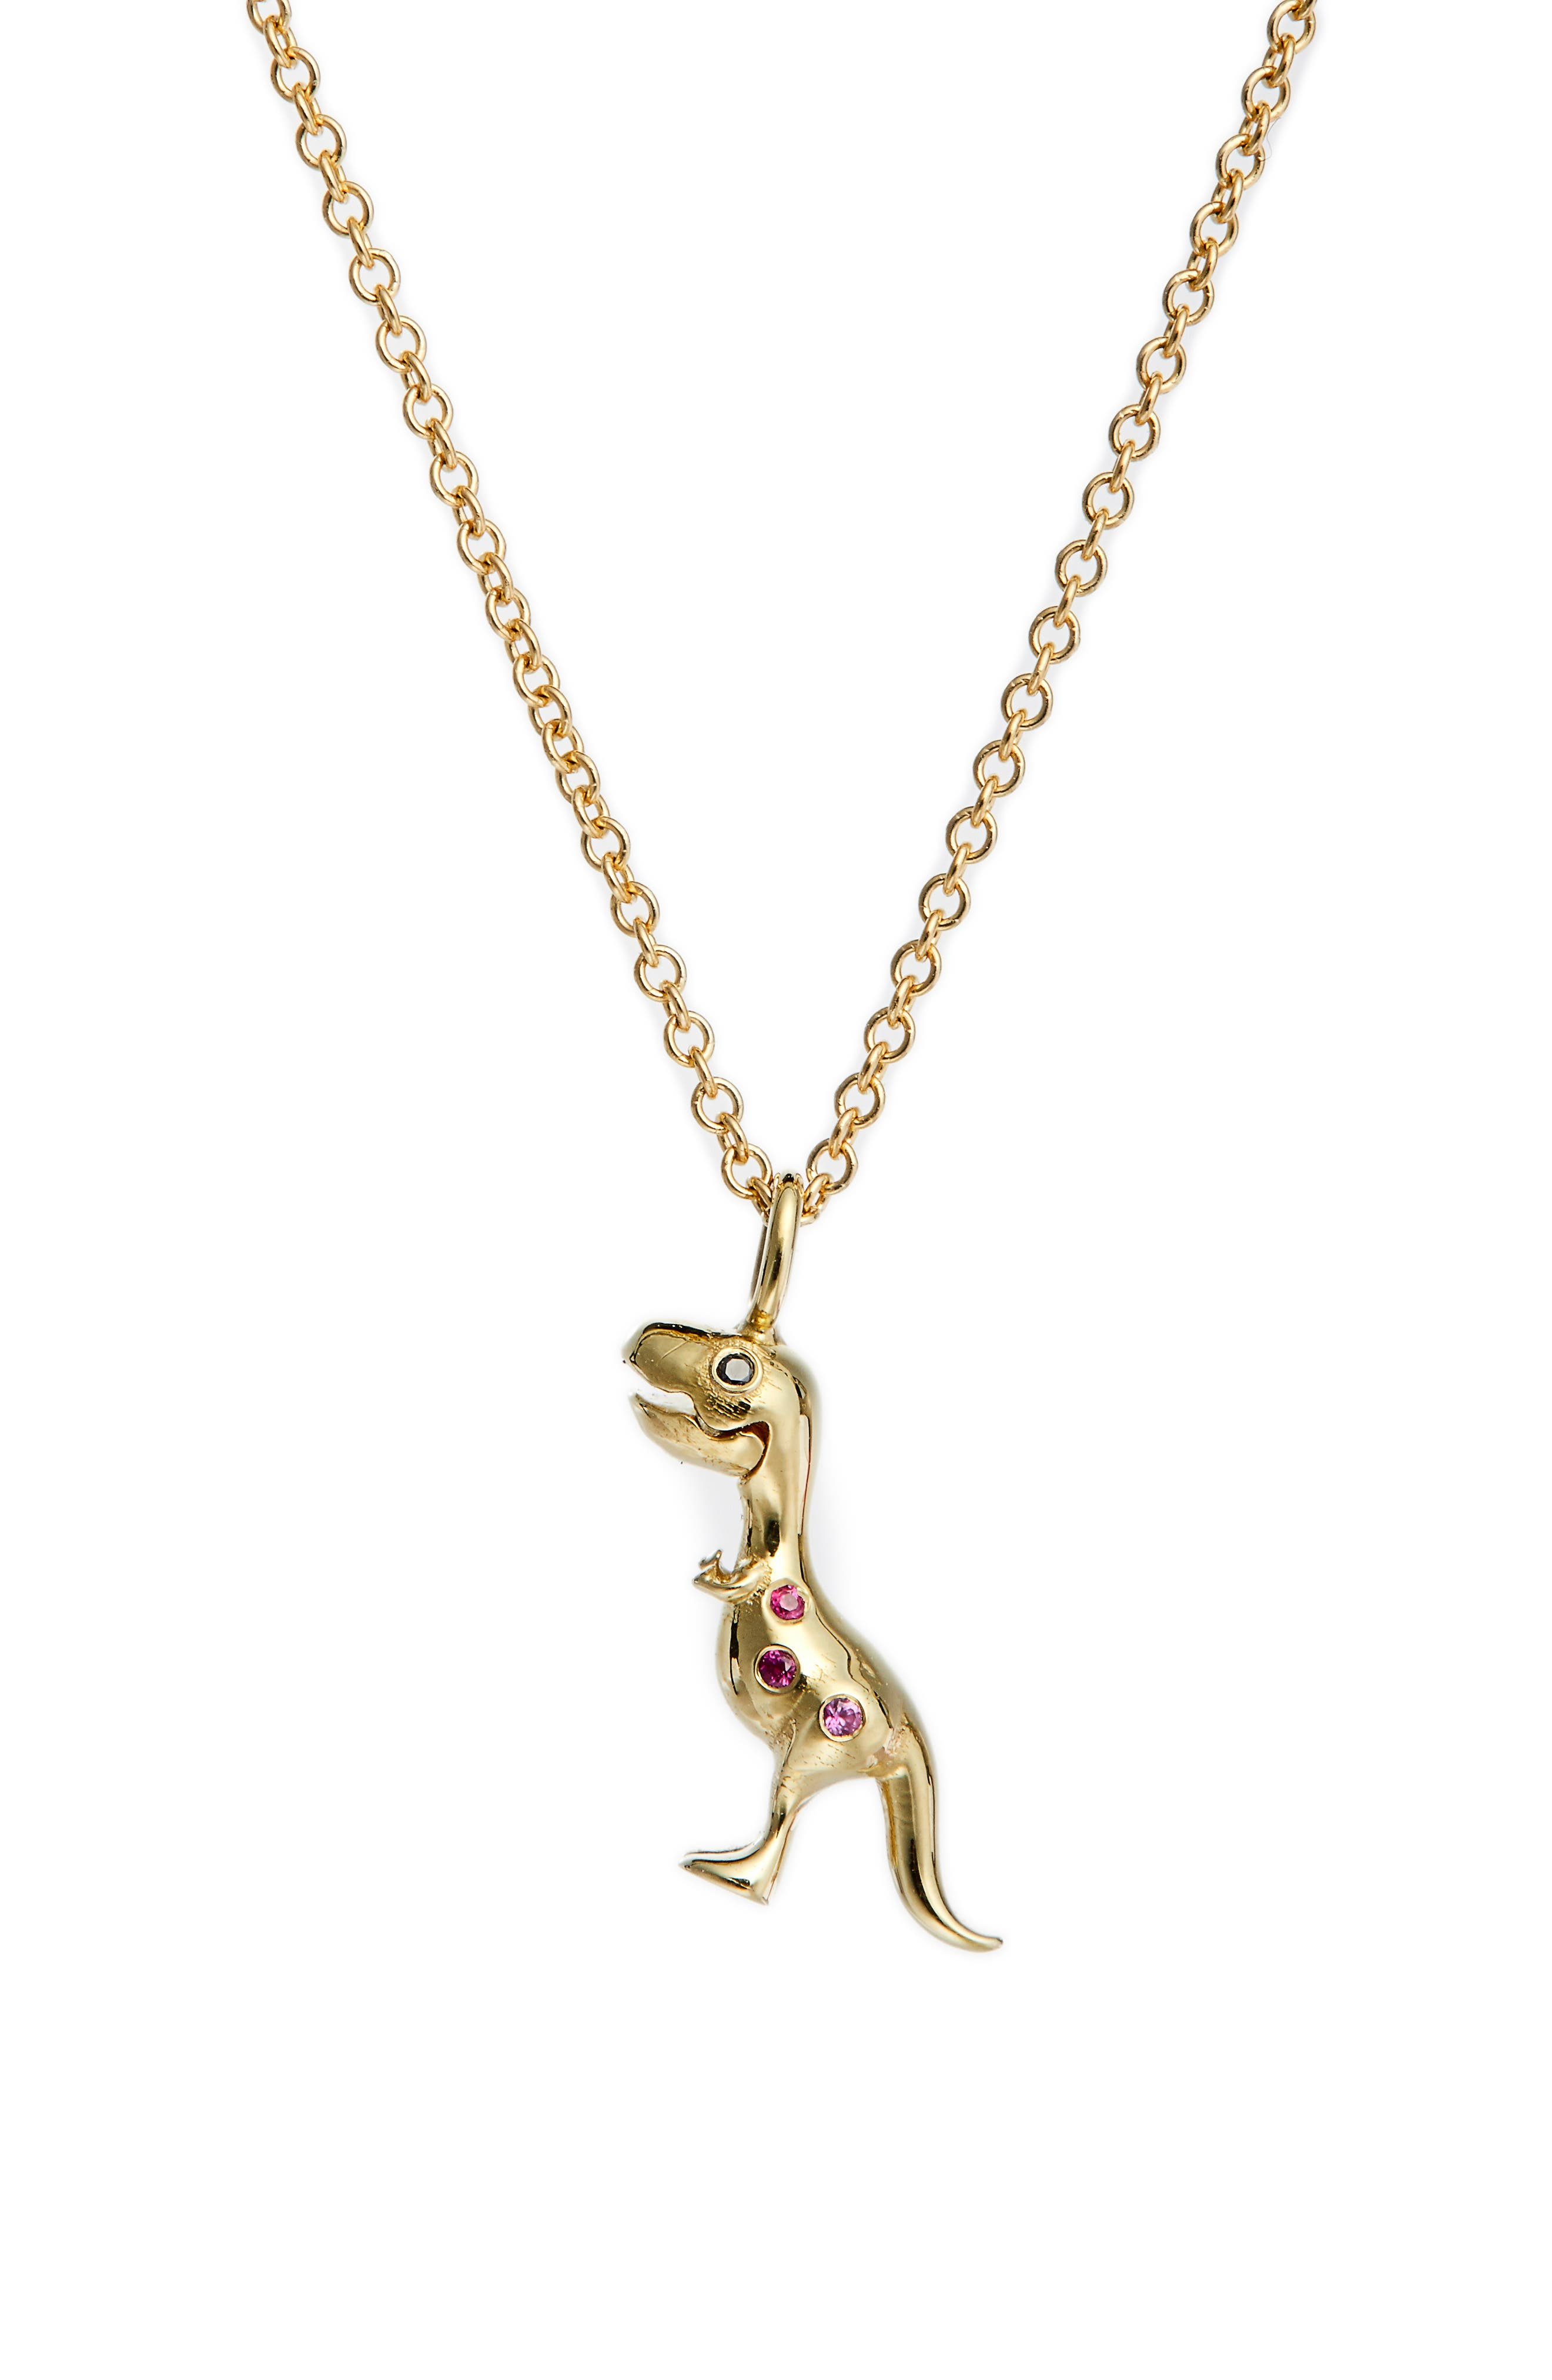 X Jurassic Park 25Th Anniversary Mini Baby T-Rex Ruby Pendant Necklace (Nordstrom Exclusive)